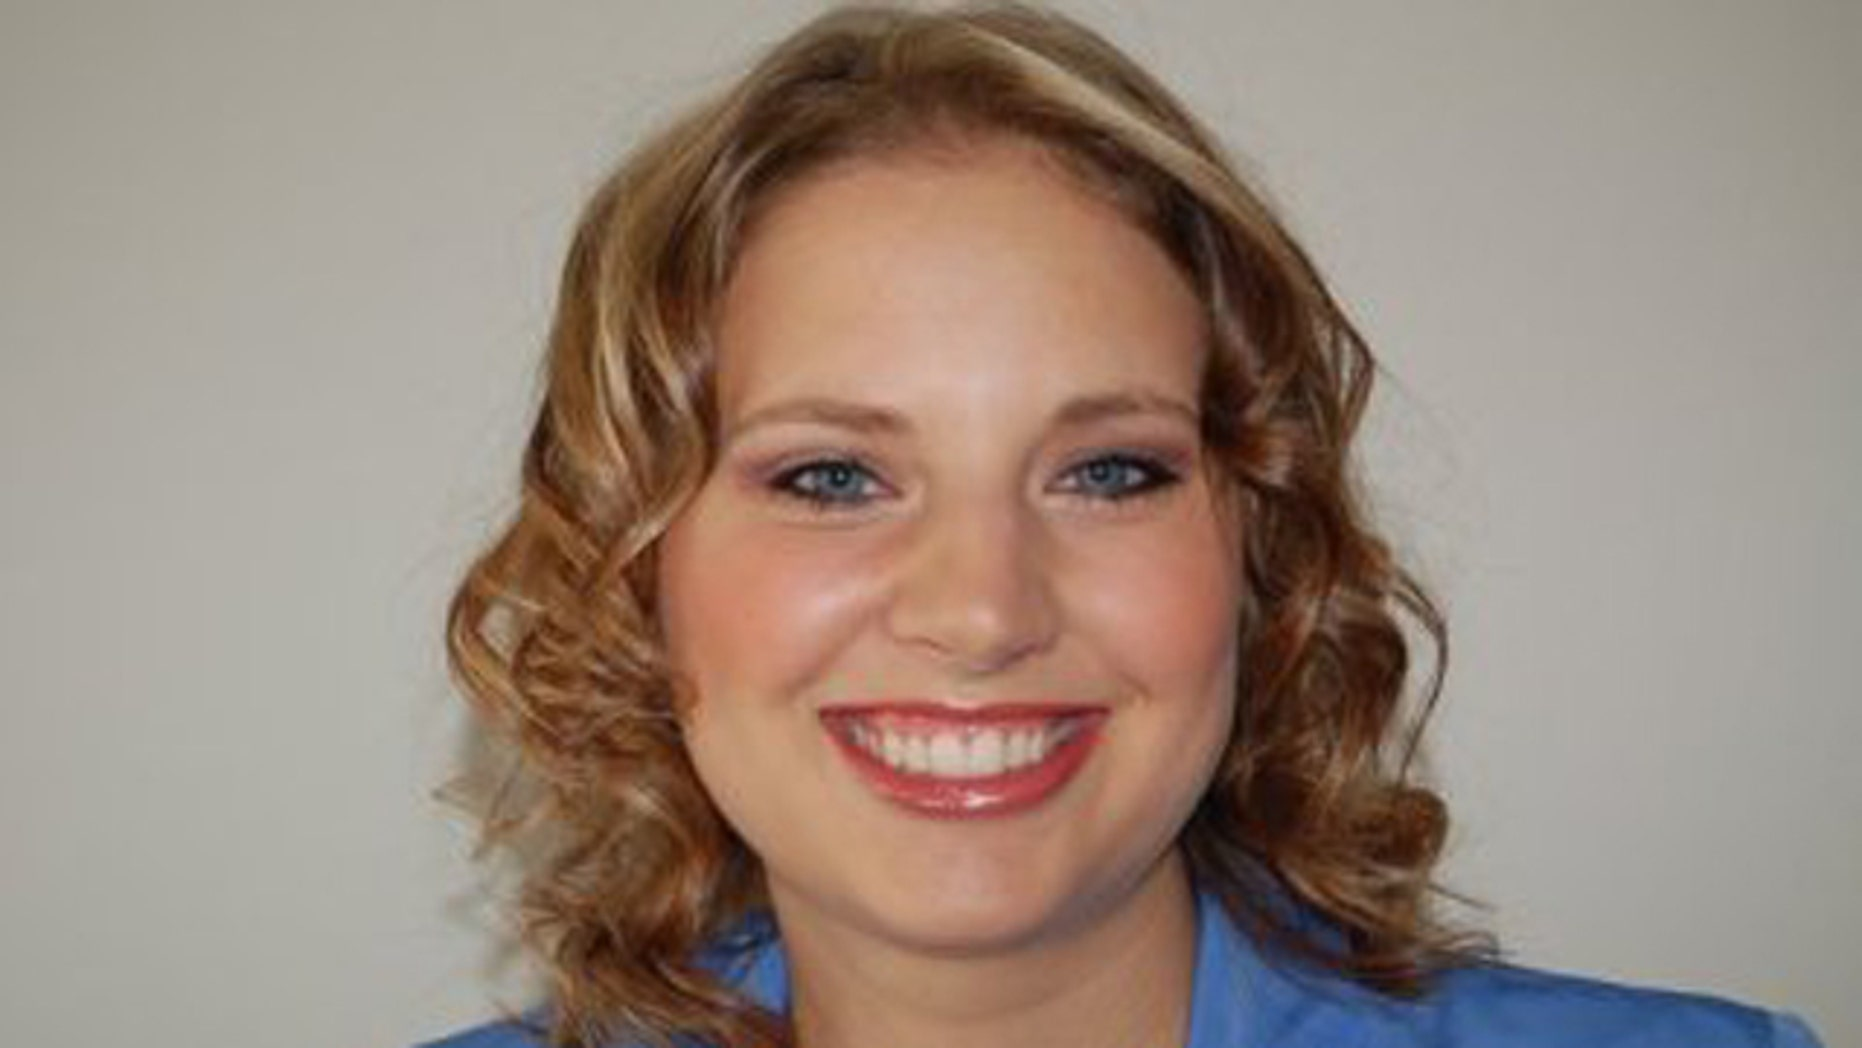 Susan Cox Powell was 28 when she was reported missing on Dec. 6, 2009.